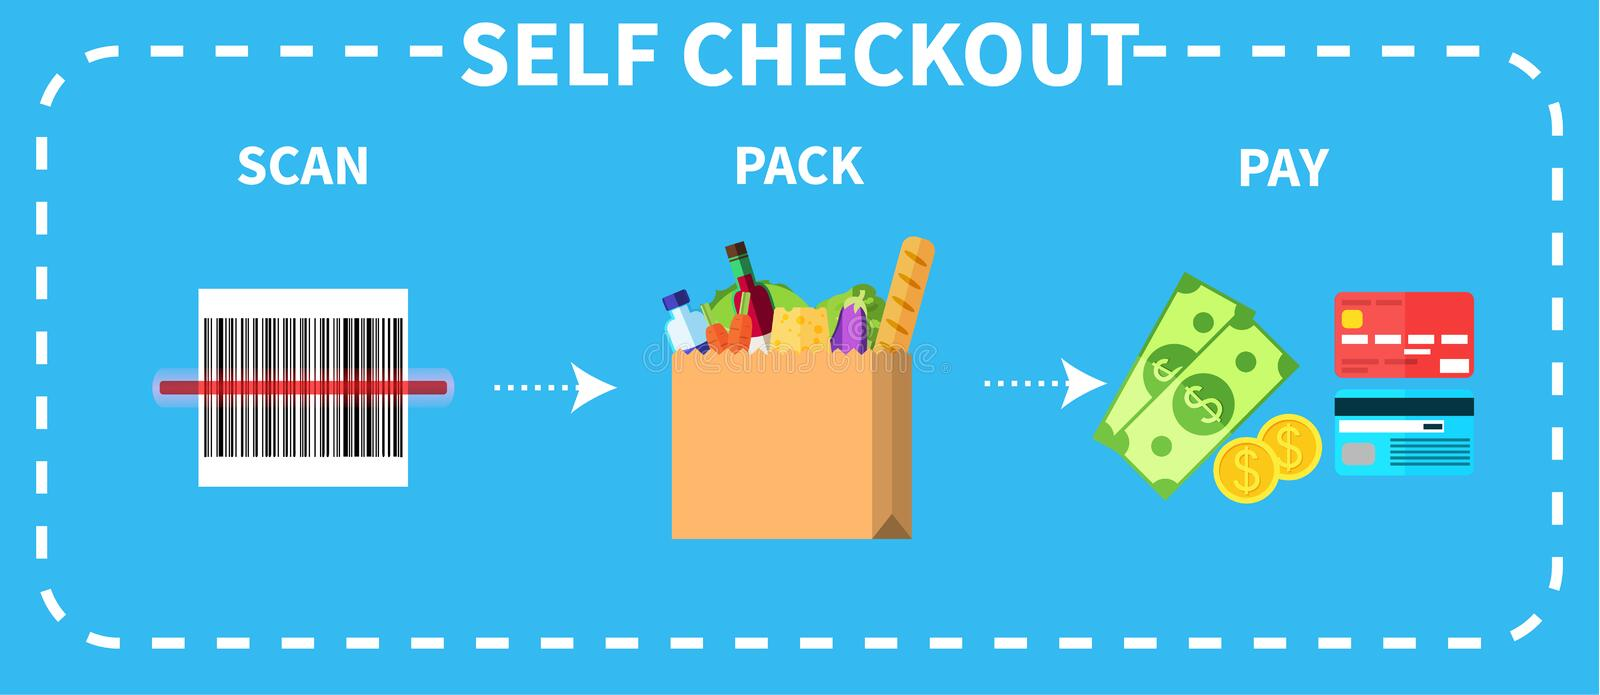 Vector colorful instruction for self checkout. Step by step description of three necessary actions scan, pack, and pay vector illustration